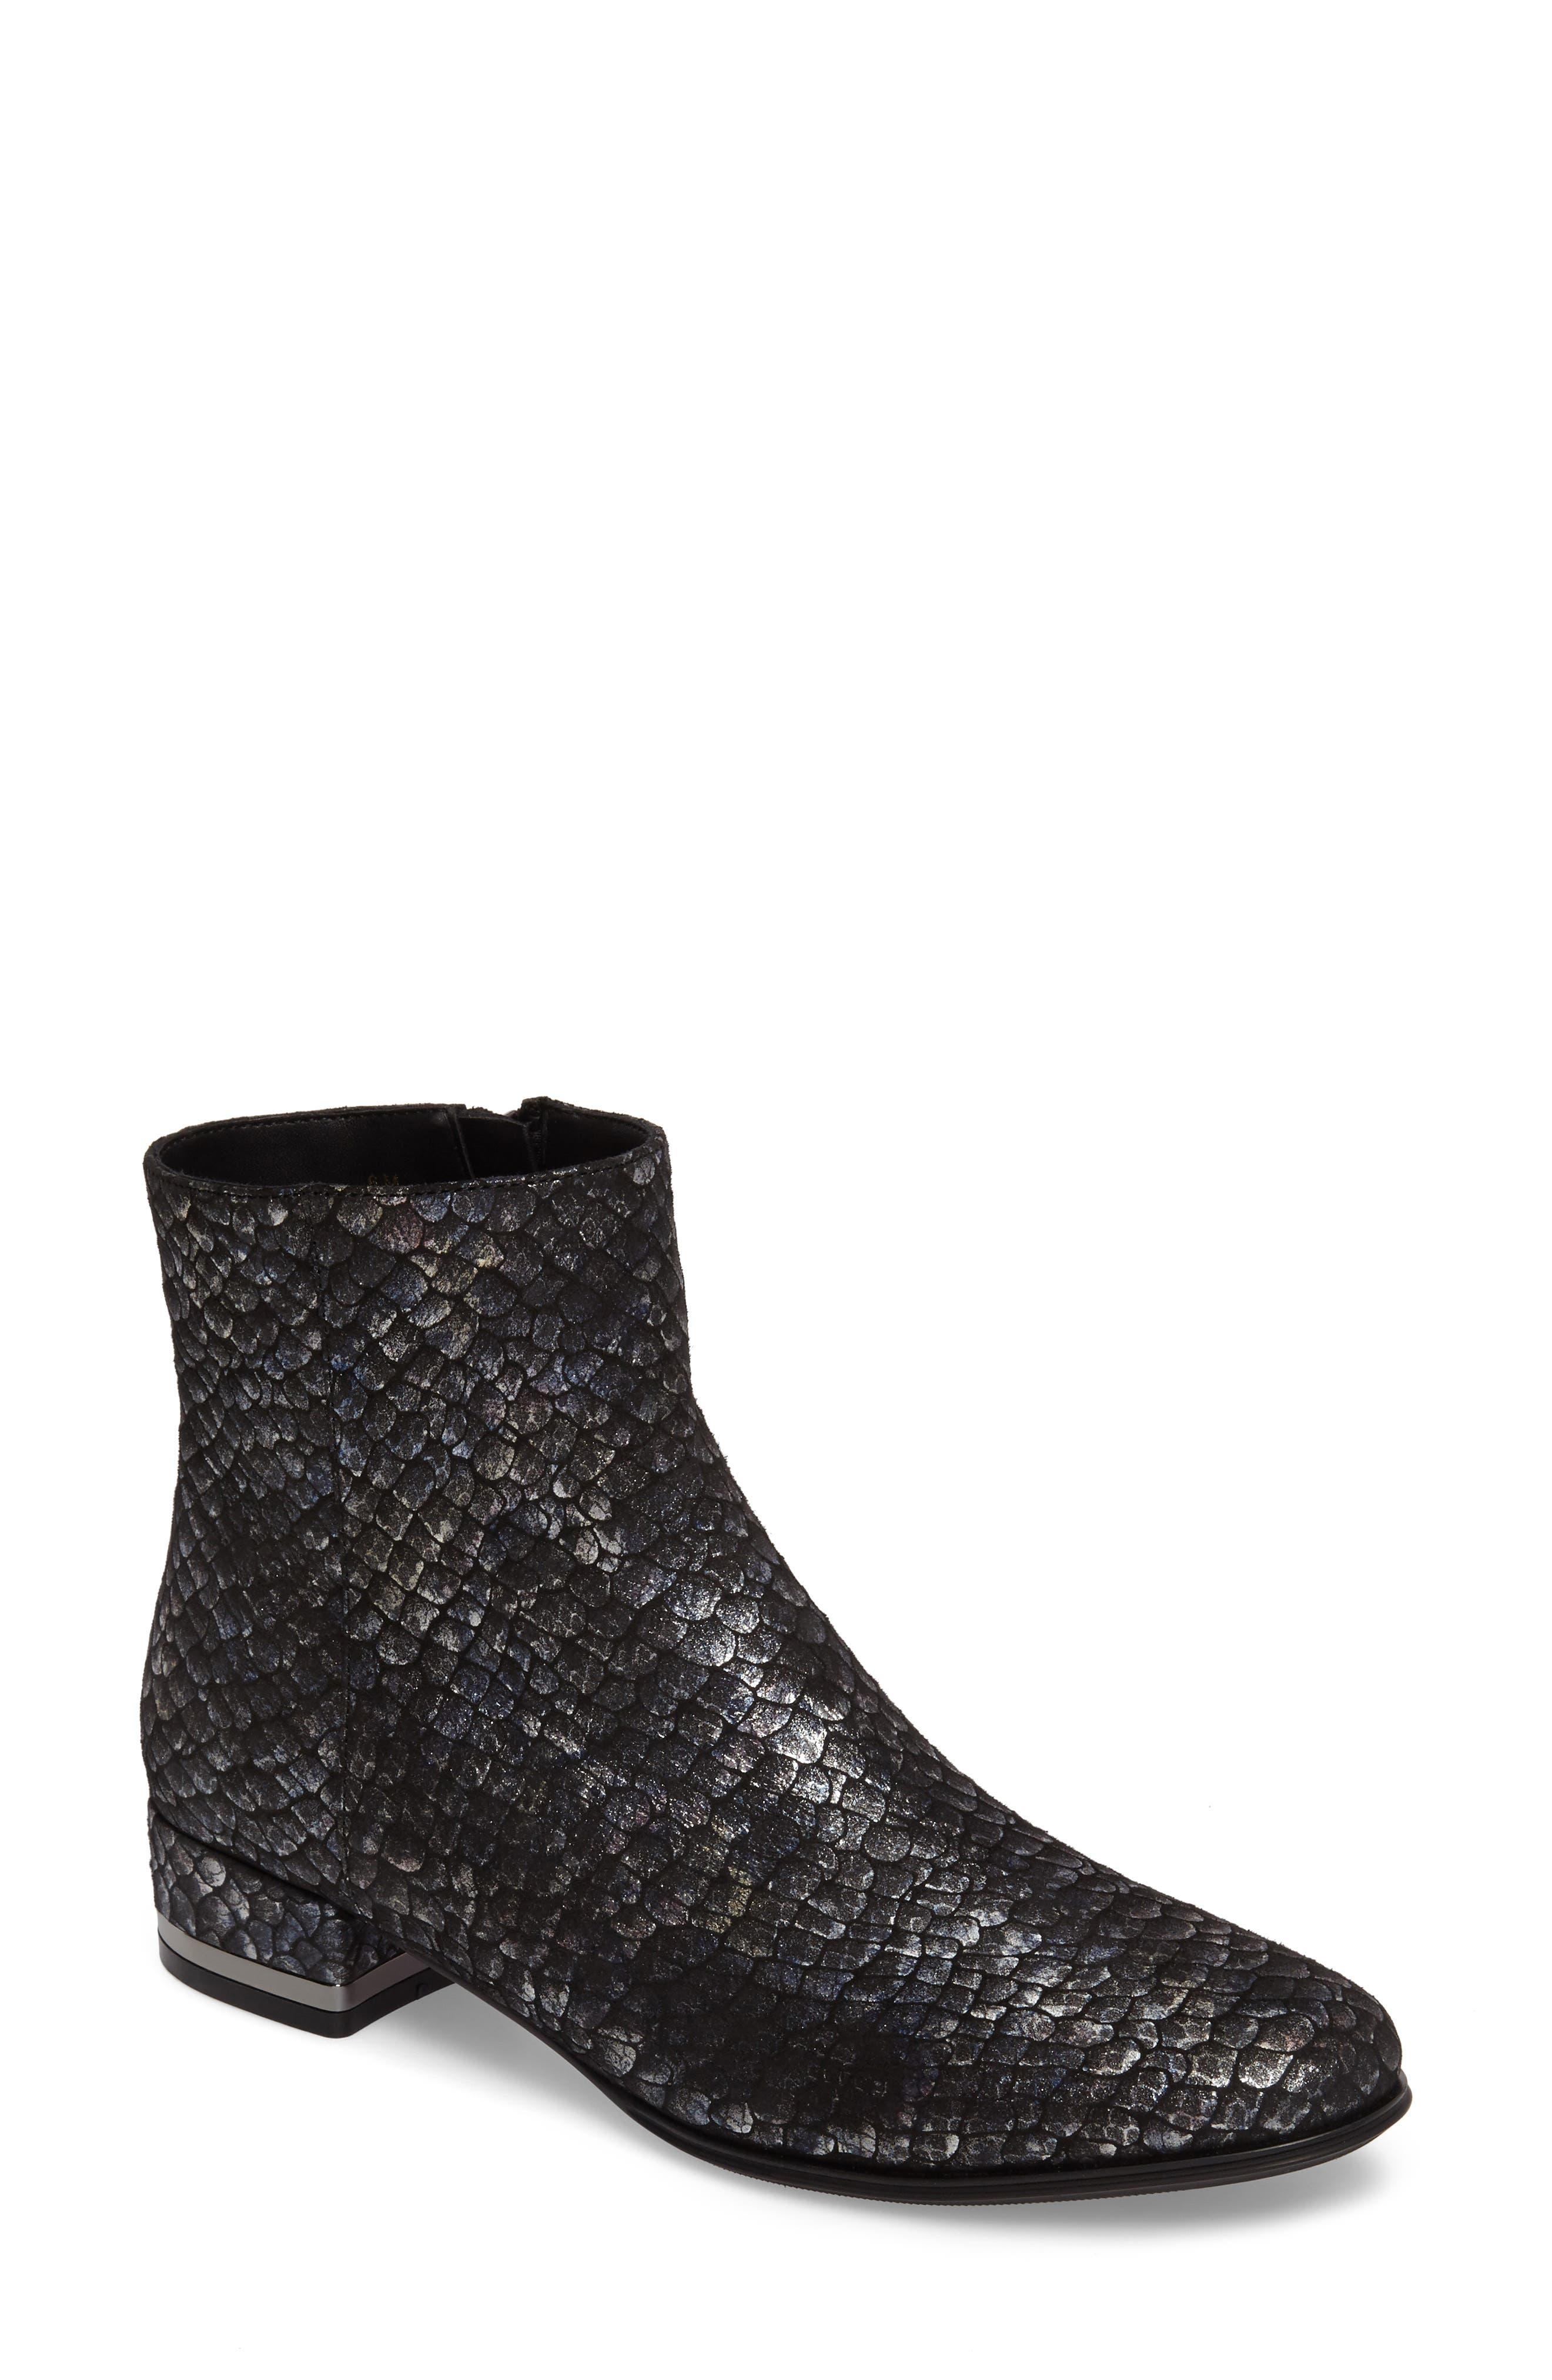 Ameldy Bootie,                         Main,                         color, 001